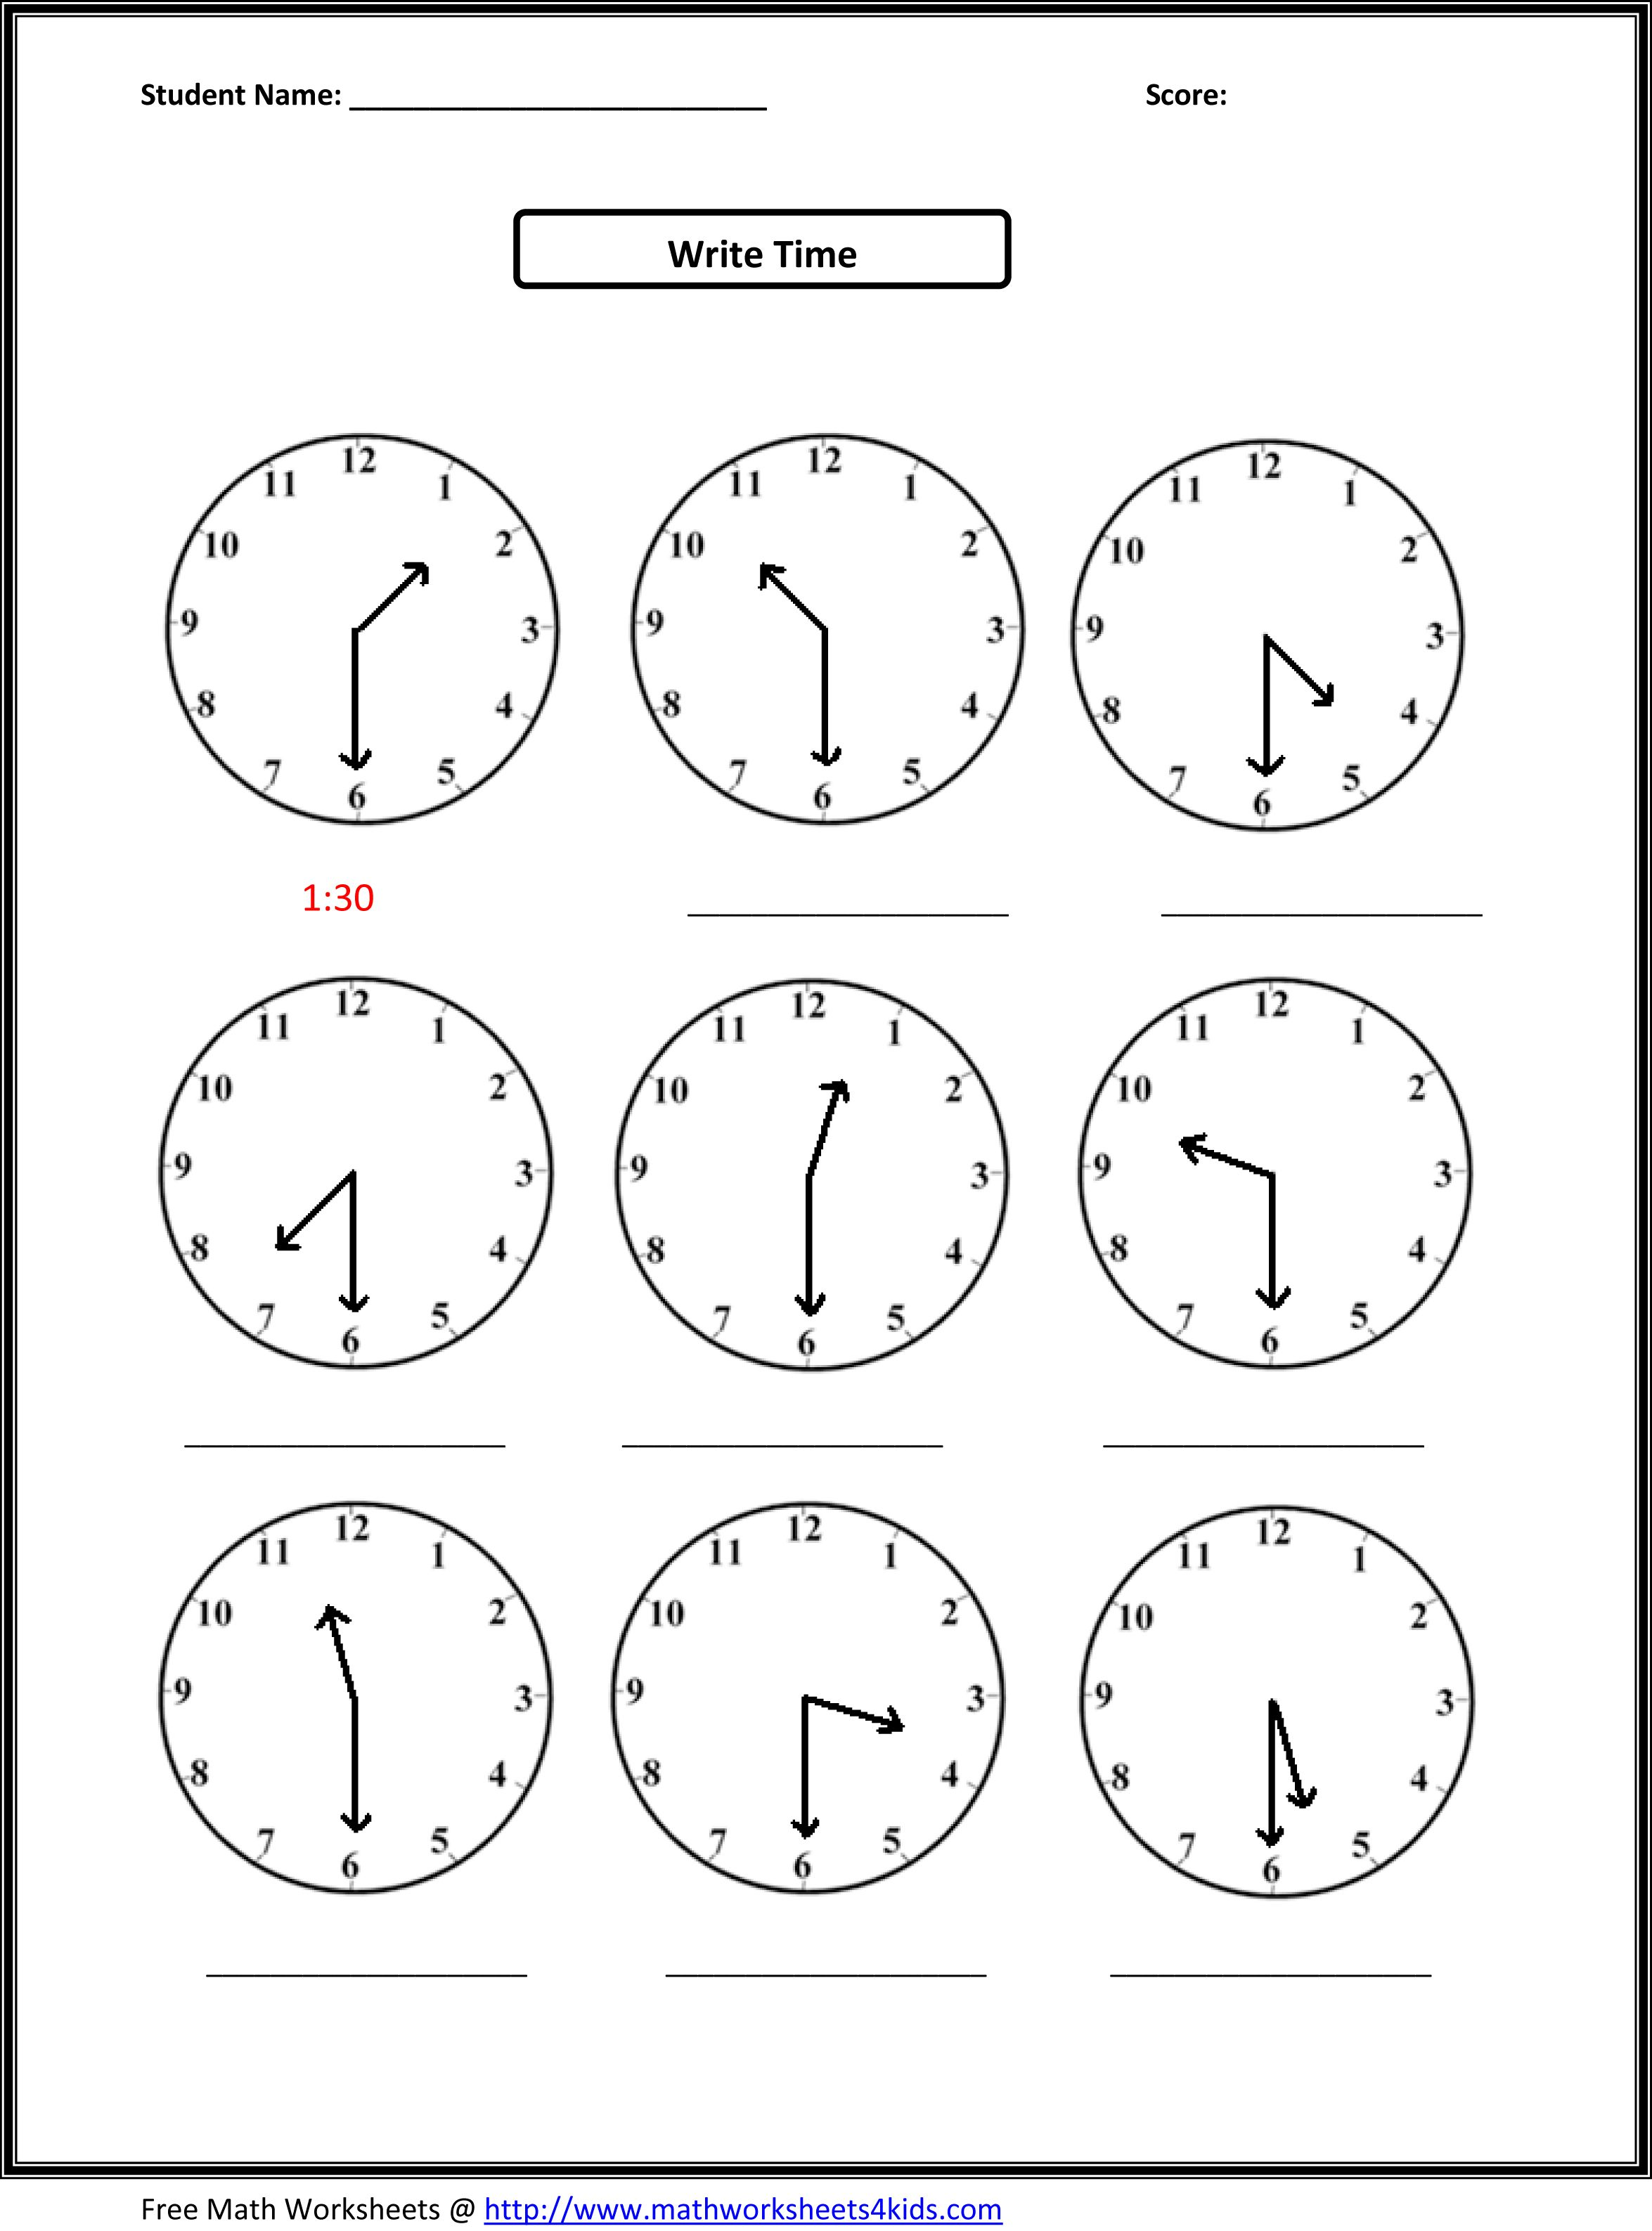 Proatmealus  Terrific Worksheet On Time For Grade   Reocurent With Handsome Free Printable Telling Time Worksheets Nd Grade  Reocurent With Enchanting Proportions Worksheets Also Trophic Levels Worksheet In Addition Chemistry Worksheet Matter  Answers And Production Possibilities Frontier Worksheet As Well As Algebra  Worksheet Additionally Drawing Angles Worksheet From Reocurentcom With Proatmealus  Handsome Worksheet On Time For Grade   Reocurent With Enchanting Free Printable Telling Time Worksheets Nd Grade  Reocurent And Terrific Proportions Worksheets Also Trophic Levels Worksheet In Addition Chemistry Worksheet Matter  Answers From Reocurentcom